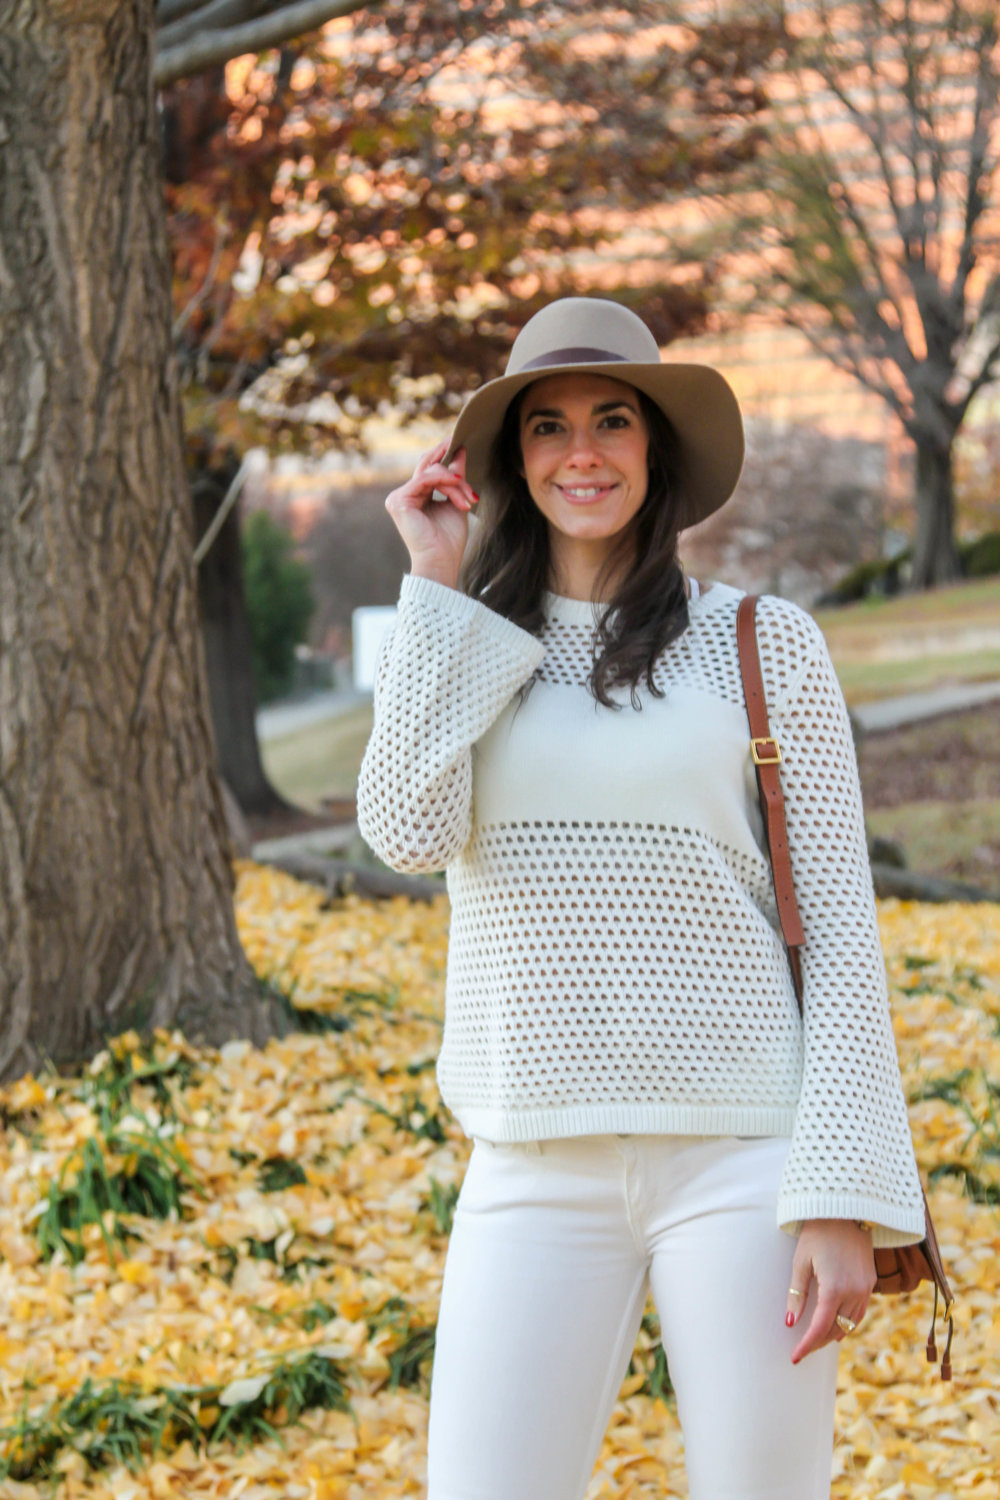 Winter-Whites-Bell-Sleeve-Sweater-Lauren-Schwaiger-Style-Blog.jpg